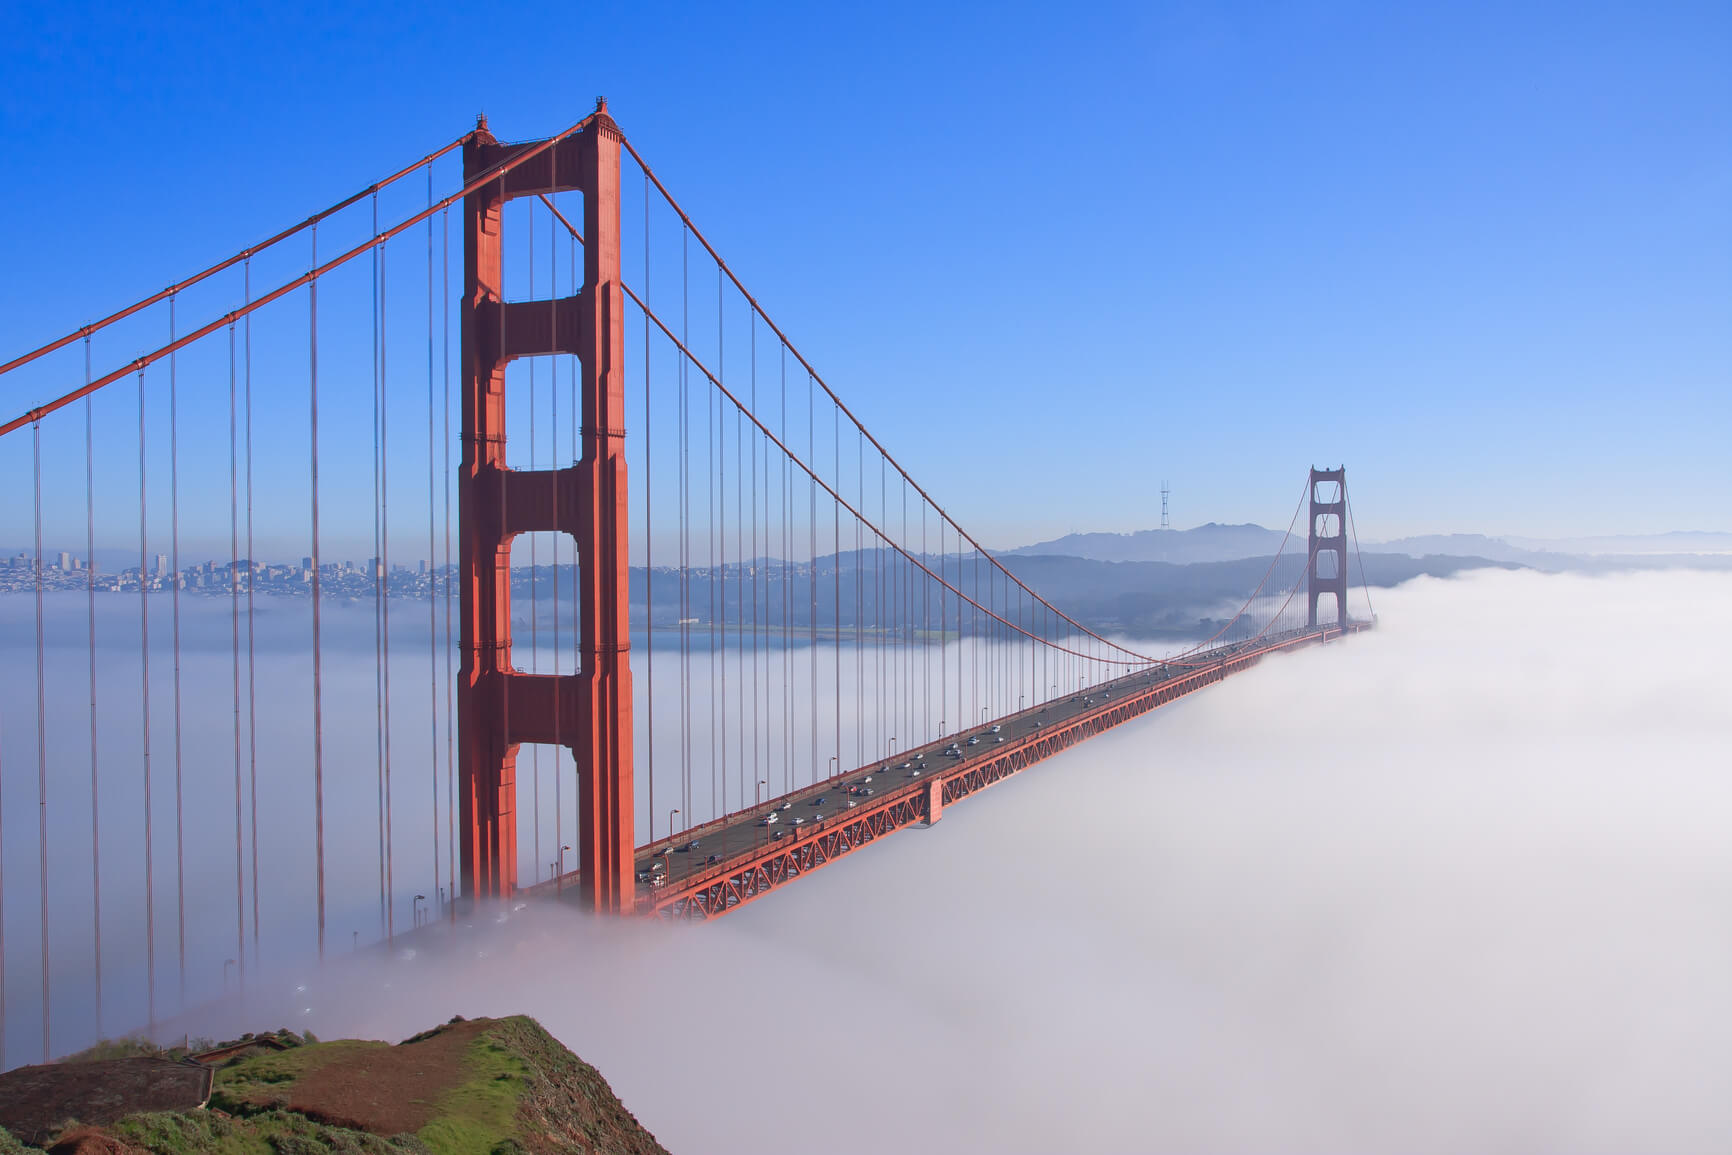 HOT!! Non-stop from Atlanta to San Francisco (& vice versa) for only $96 roundtrip